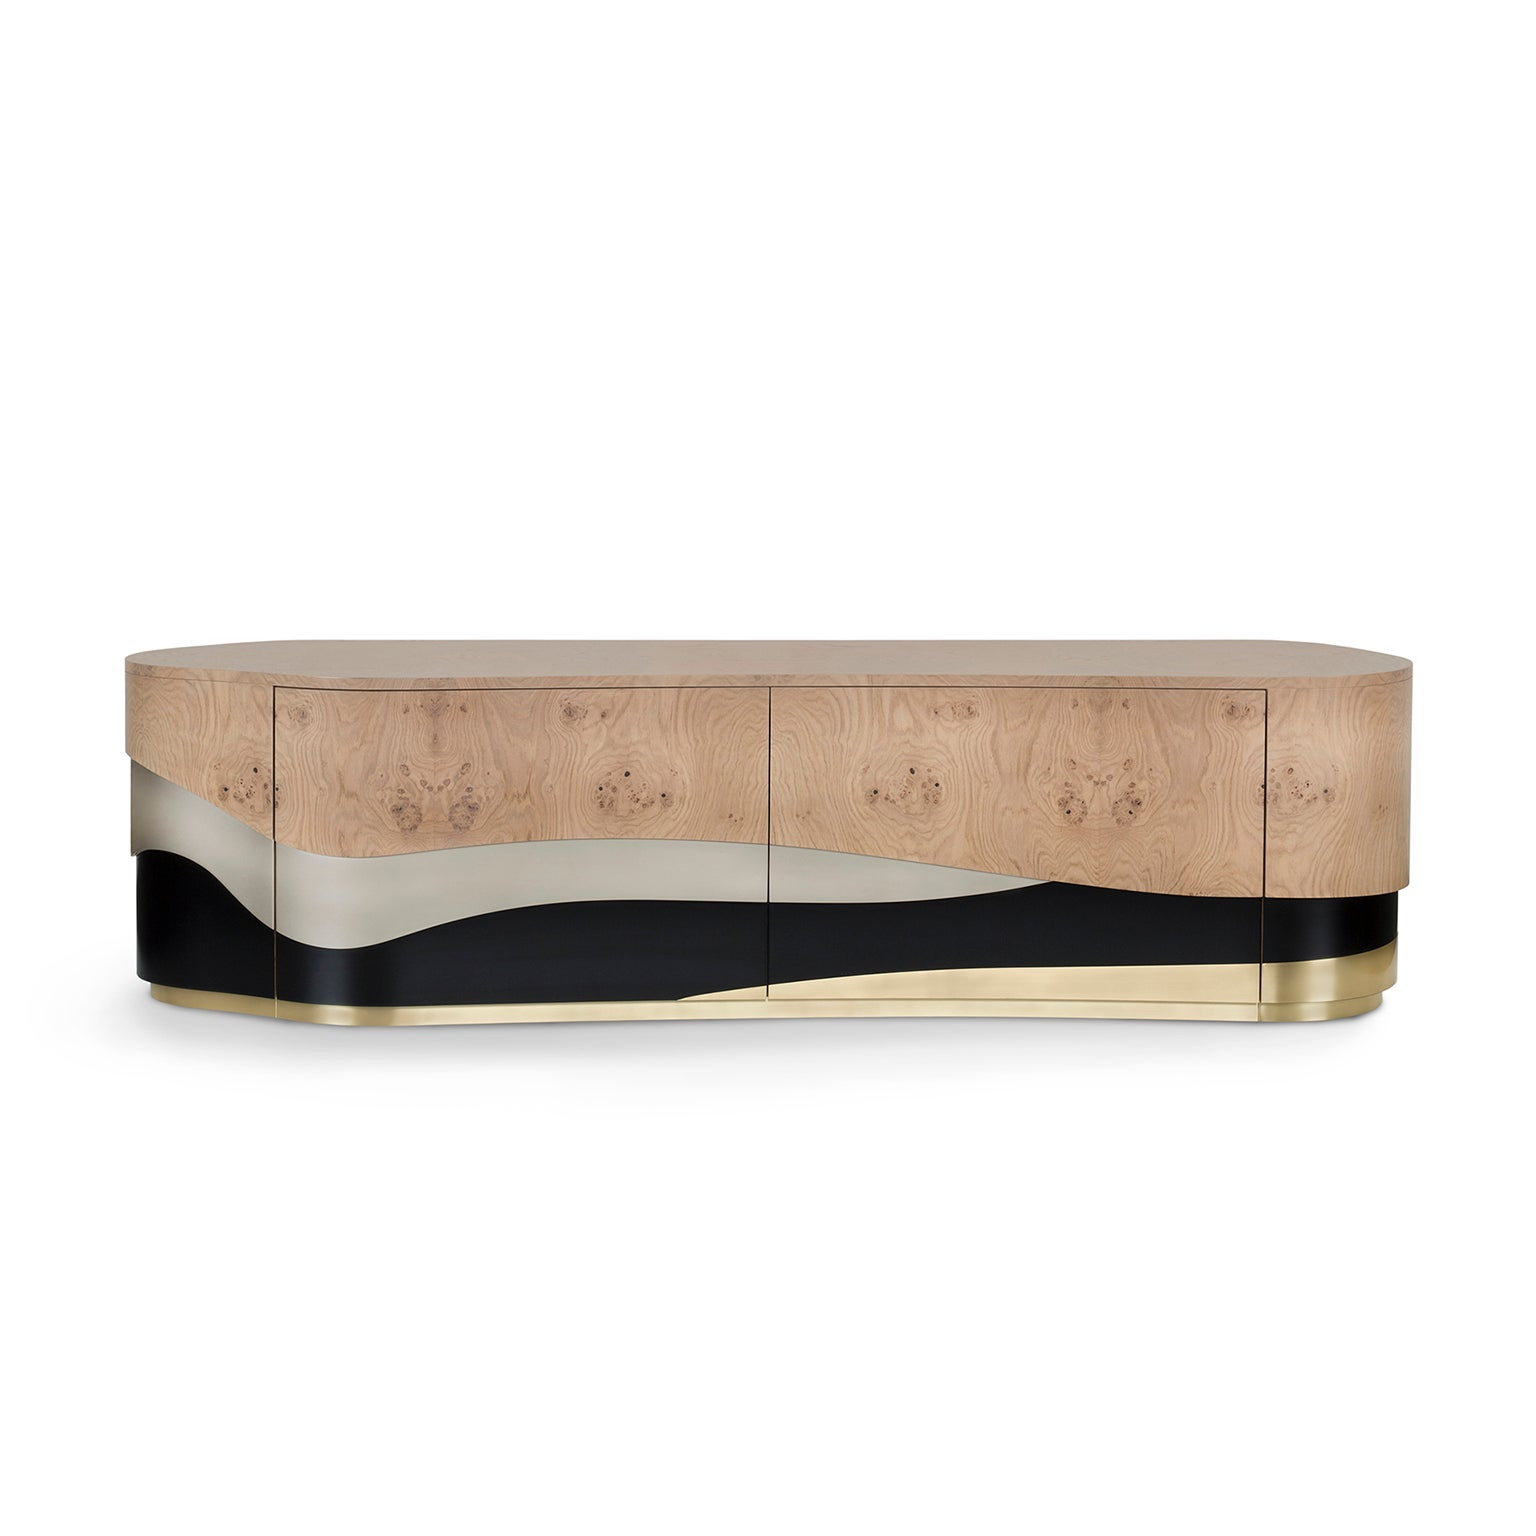 Sistelo TV Unit Oak Root Brushed Brass Black and Champagne Lacquered